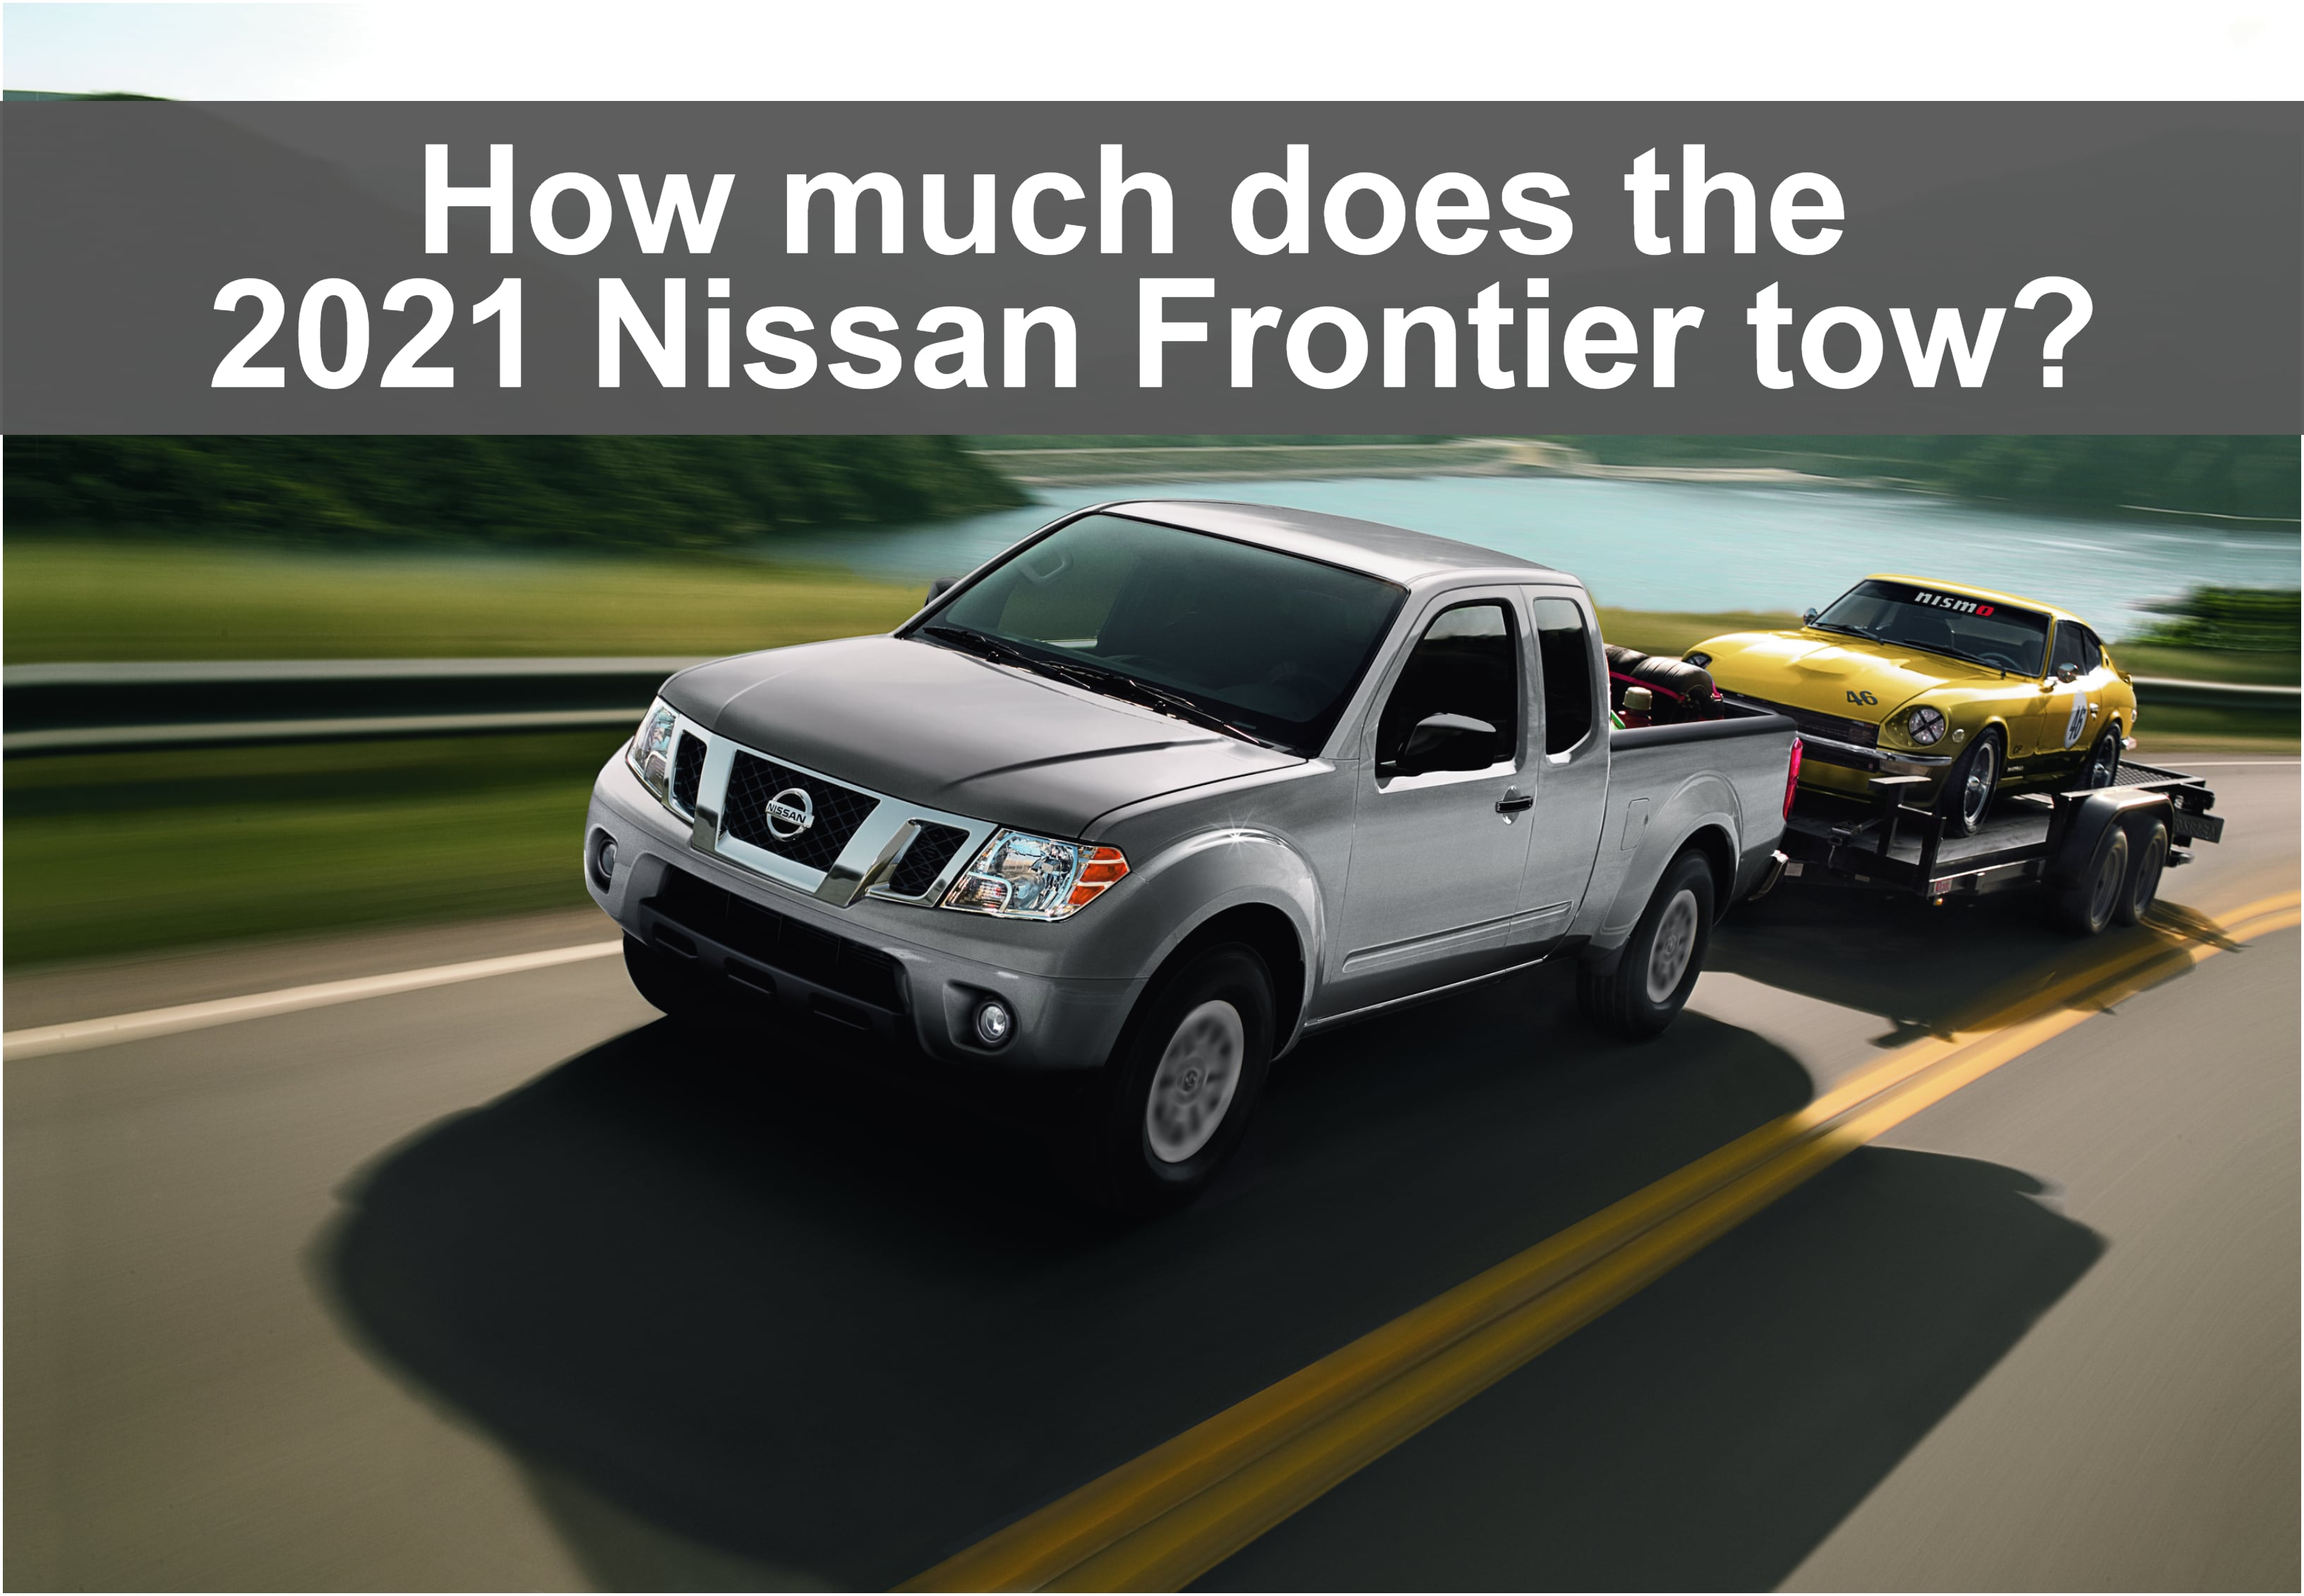 Driving View of Nissan Frontier towing vintage nissan